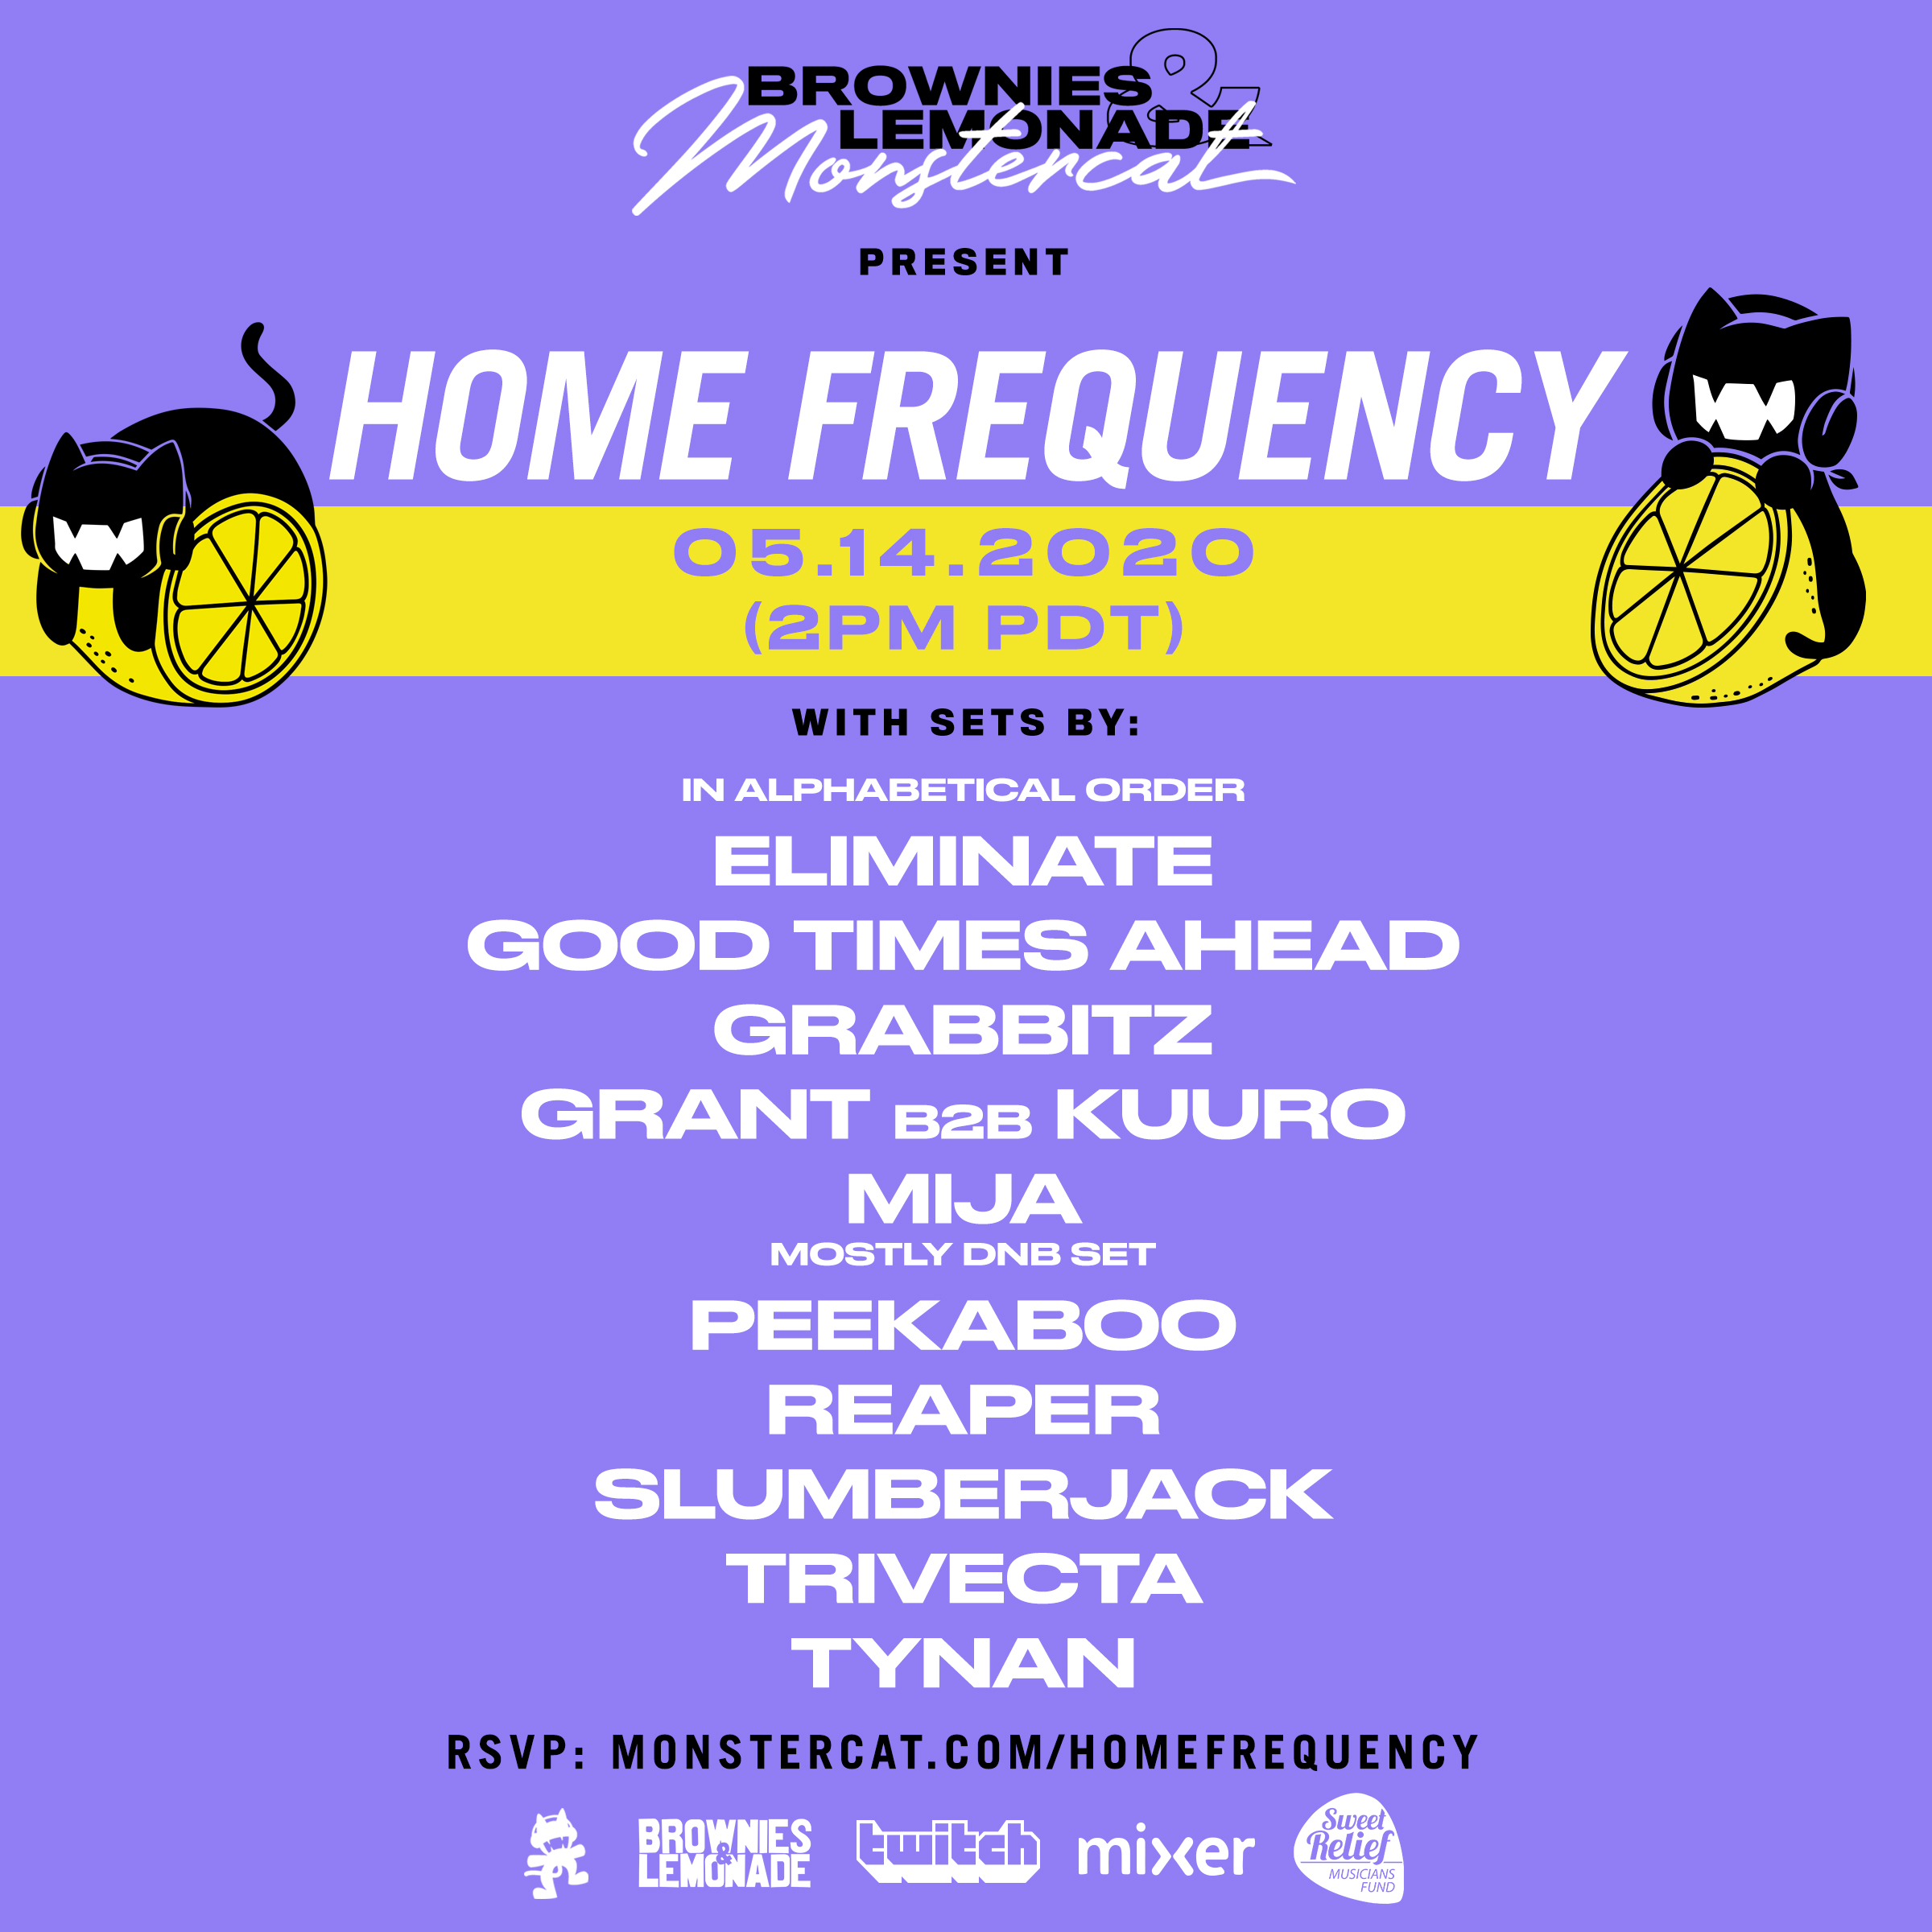 Brownies & Lemonade and Monstercat Present: Home Frequency Lineup